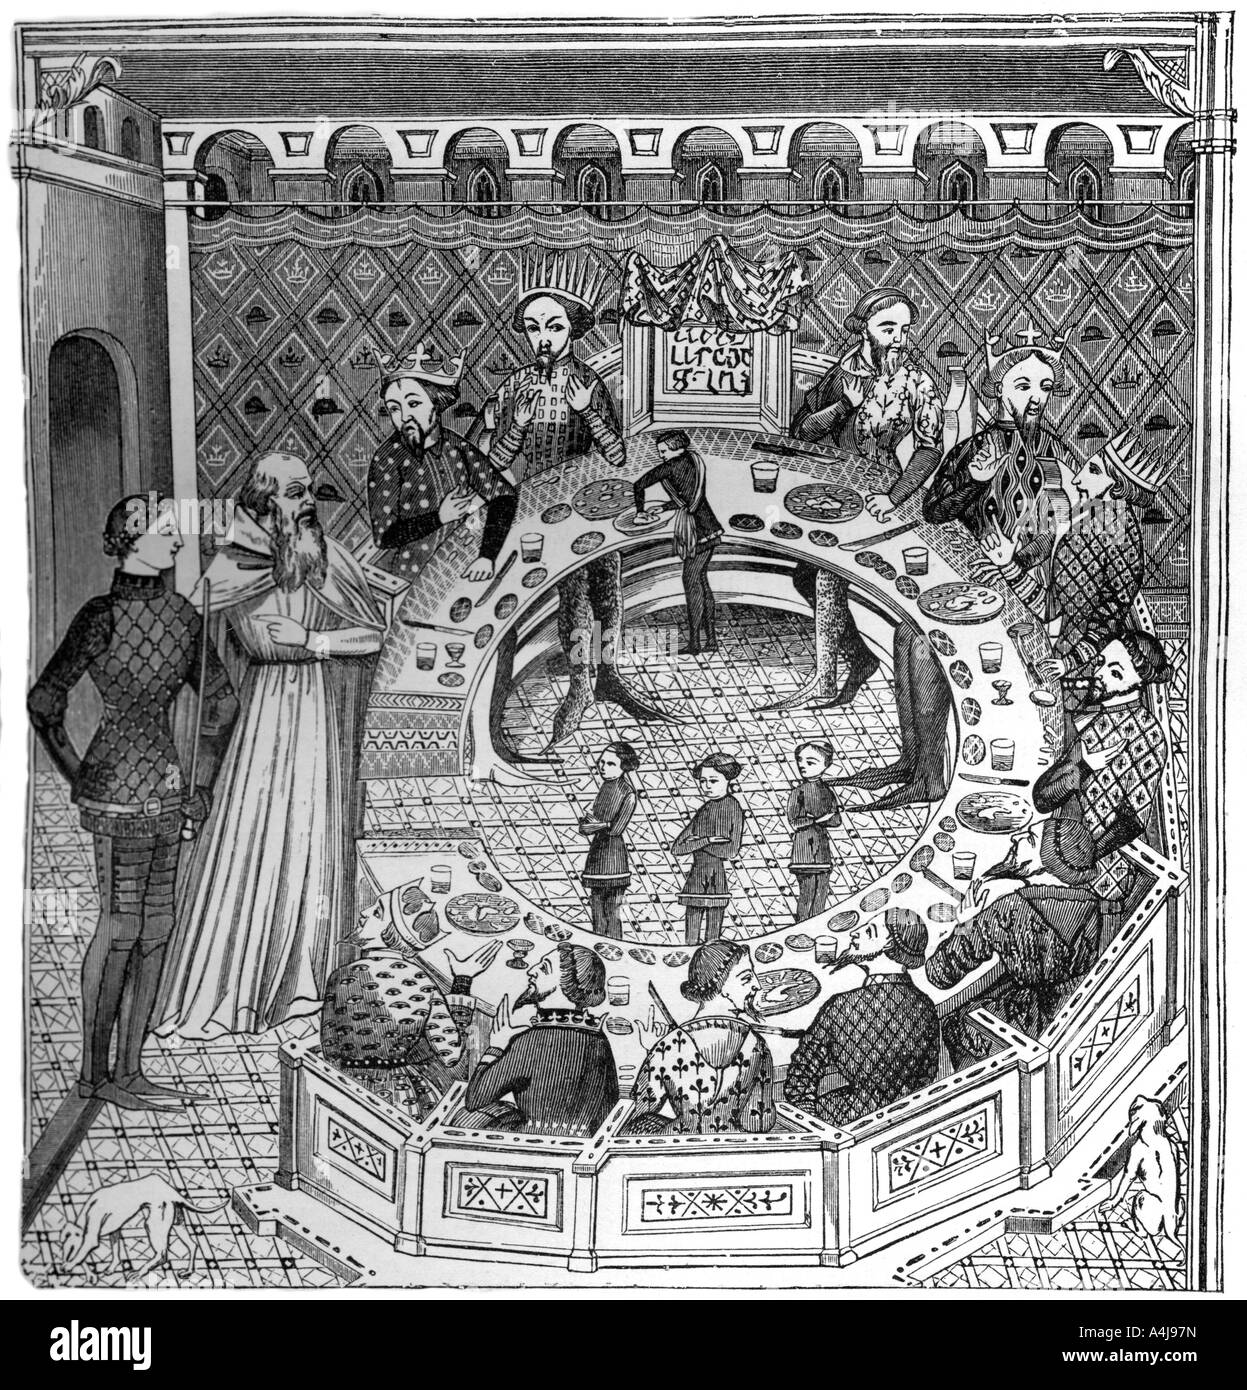 The round table of King Artus of Brittany 14th century 1870